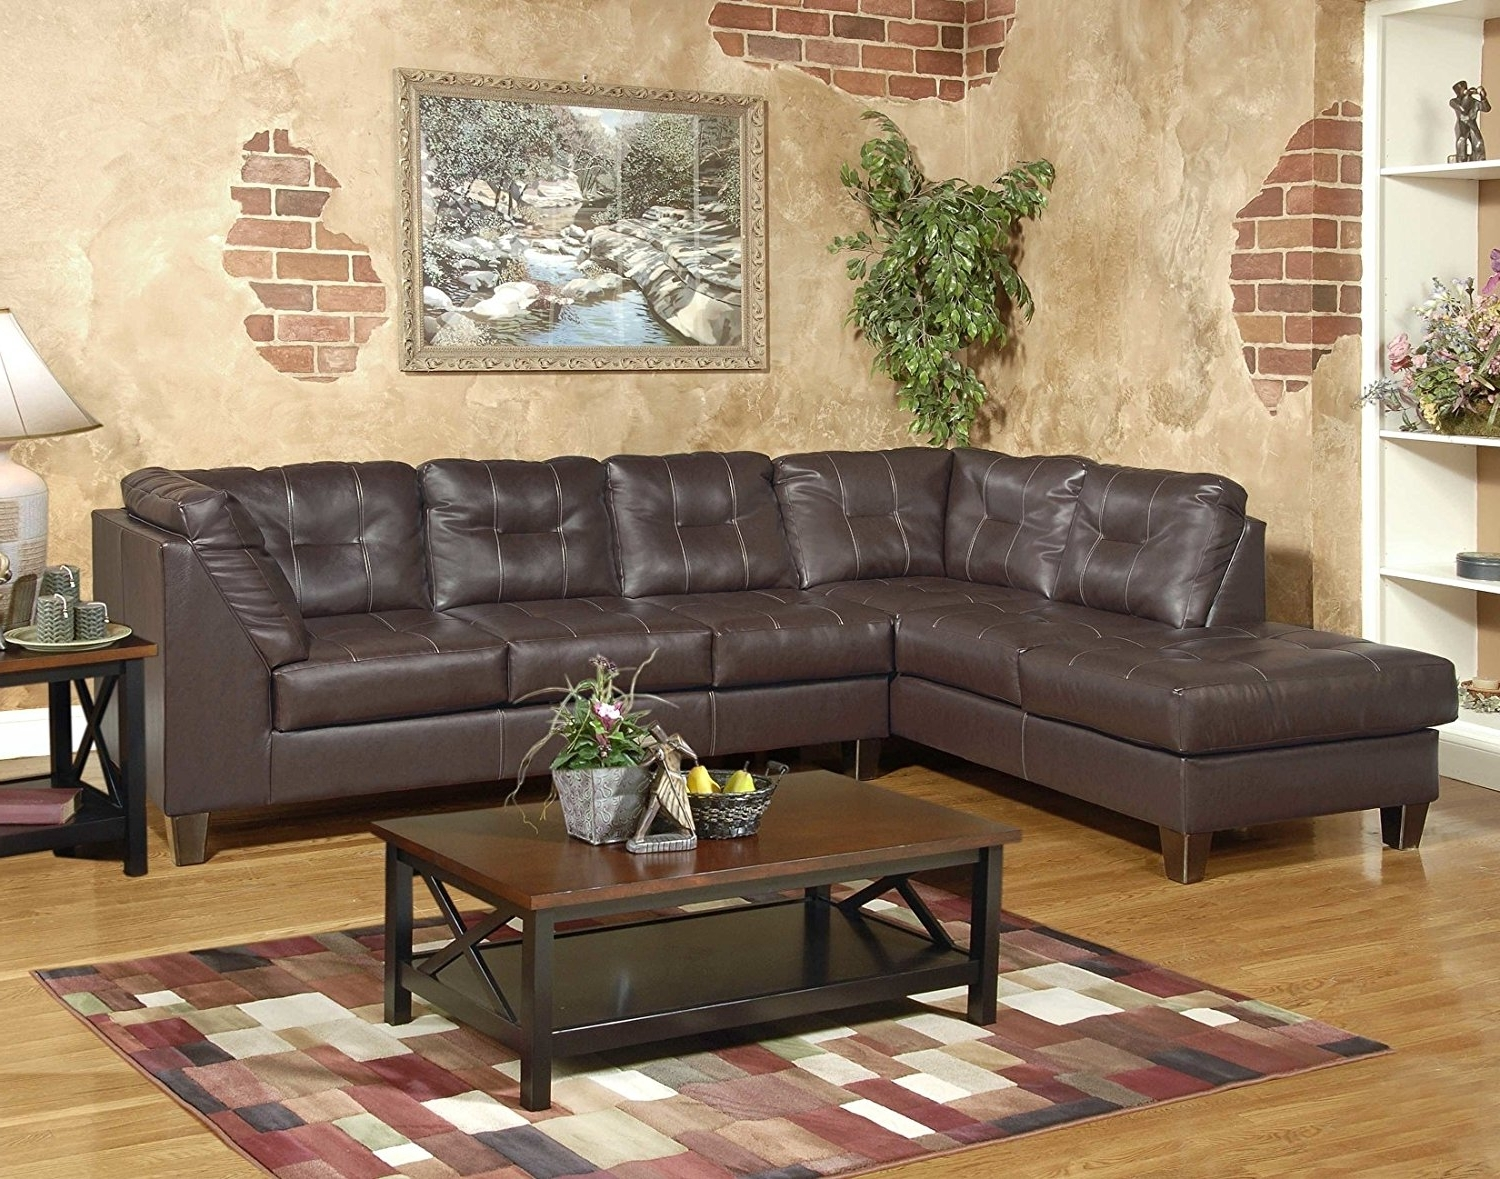 Amazon: Roundhill Furniture Marinio Chocolate Faux Leather Regarding Latest Greensboro Nc Sectional Sofas (View 2 of 15)